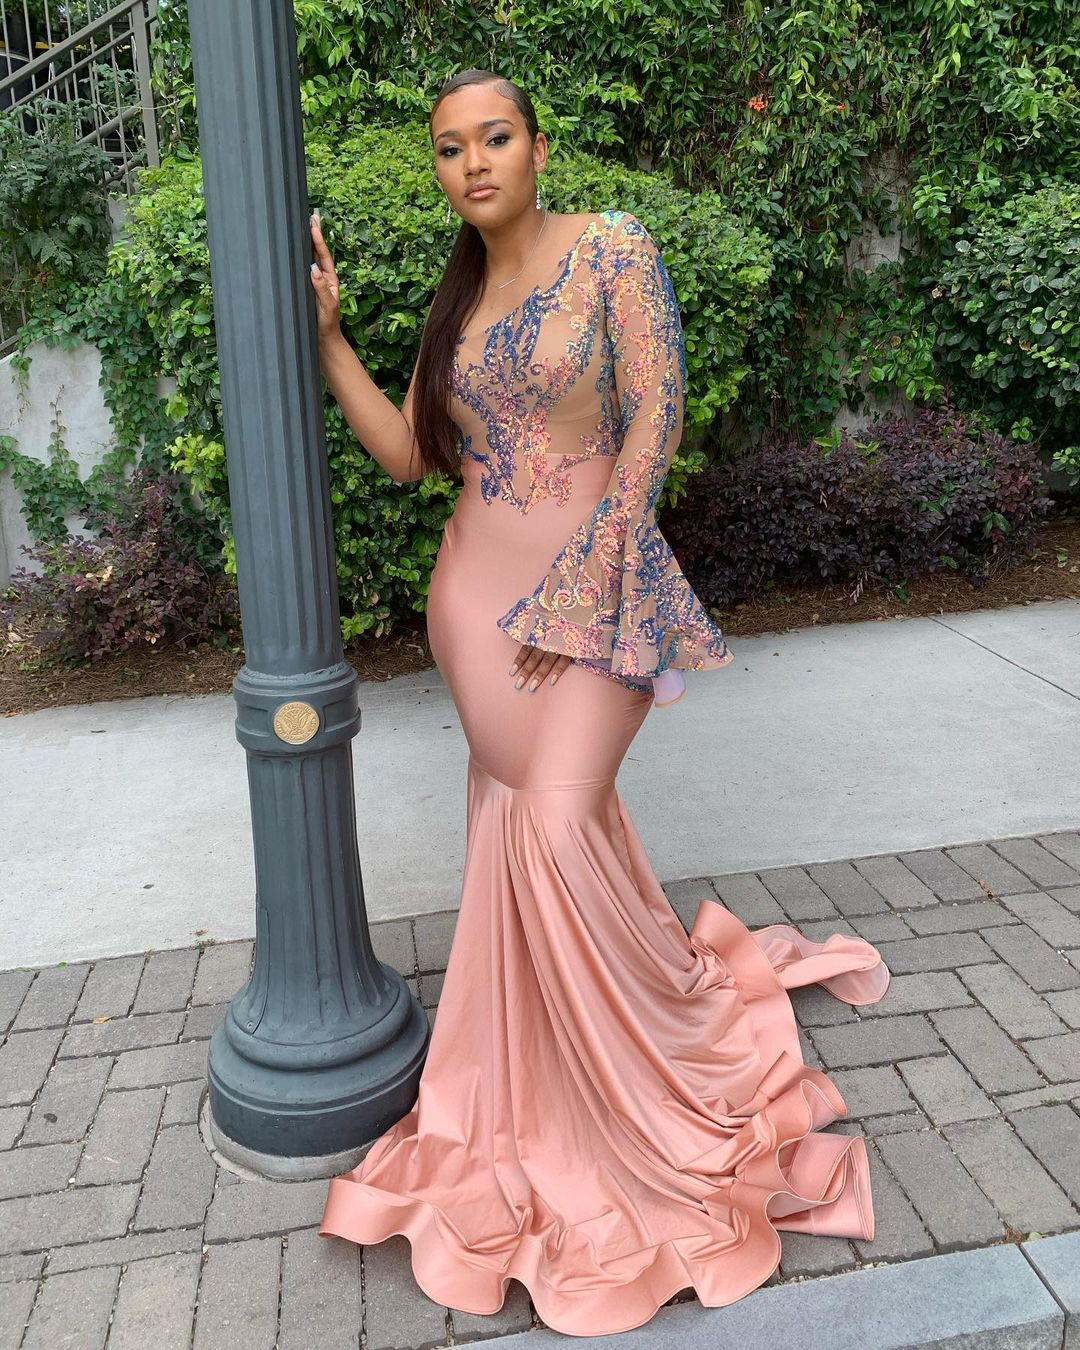 Sleek Conservative Mermaid Gown